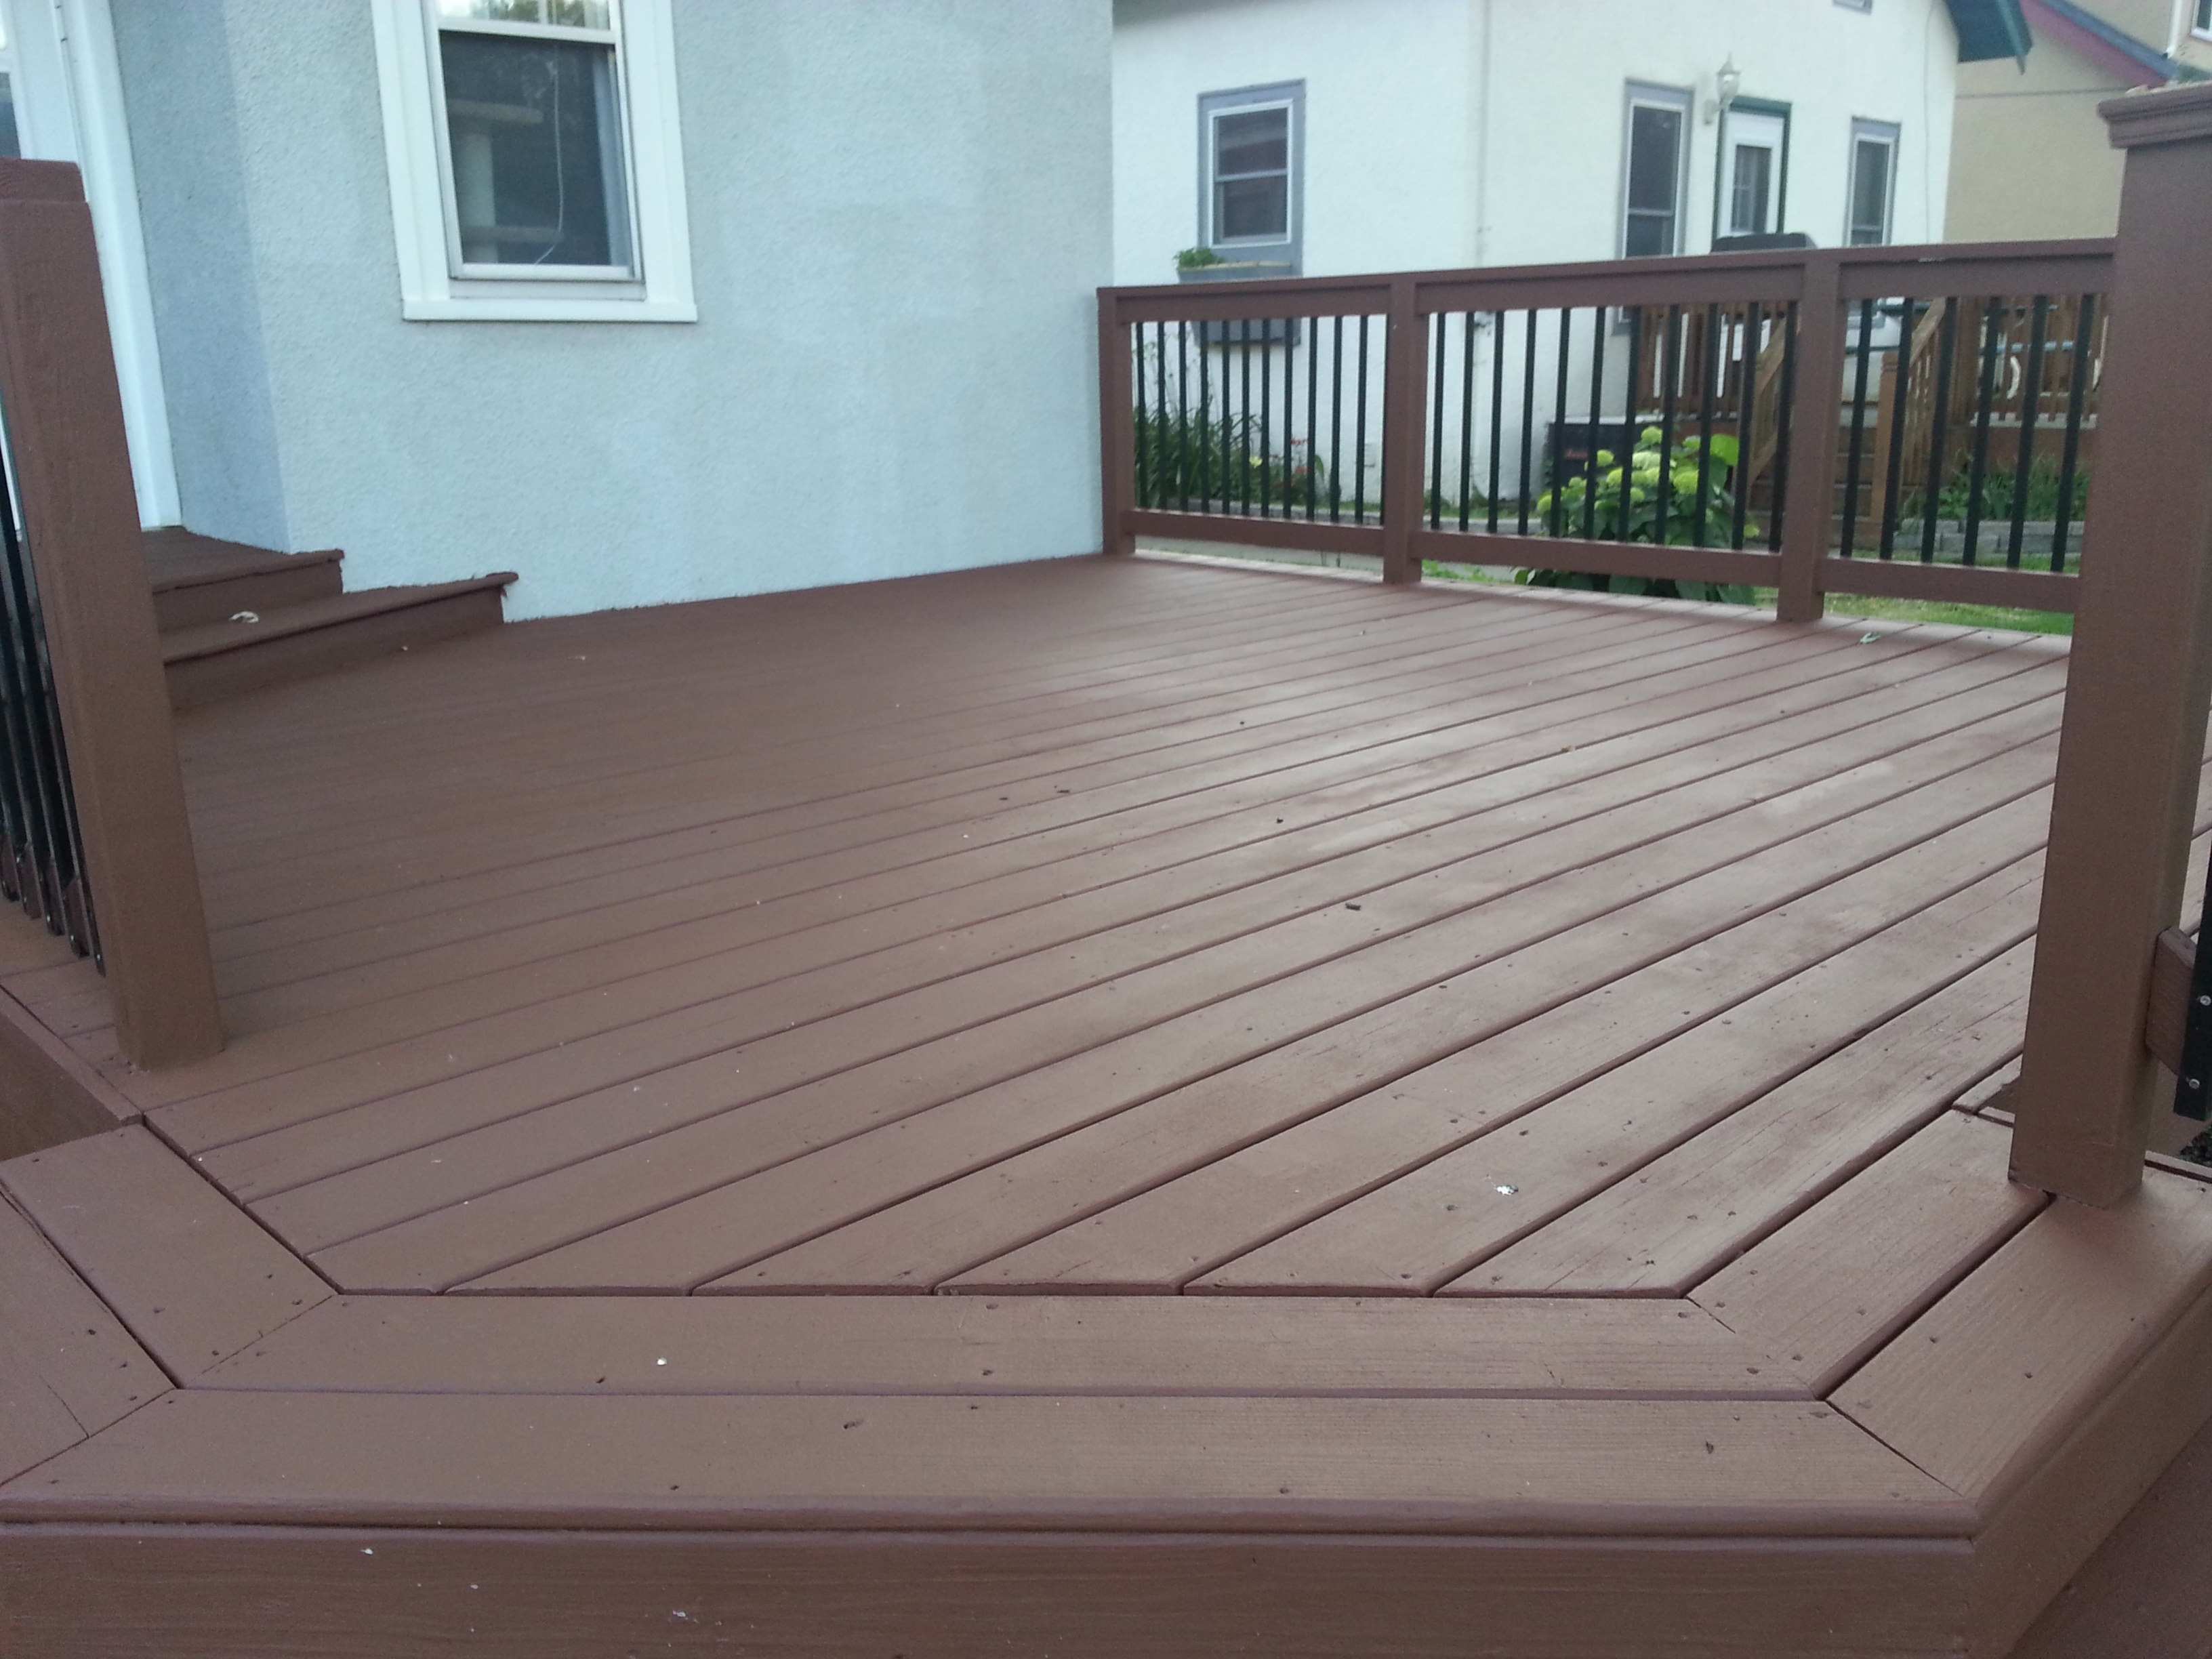 Decking Behr Deck Cleaner Behr Stain Behr Deckover Colors inside measurements 3264 X 2448